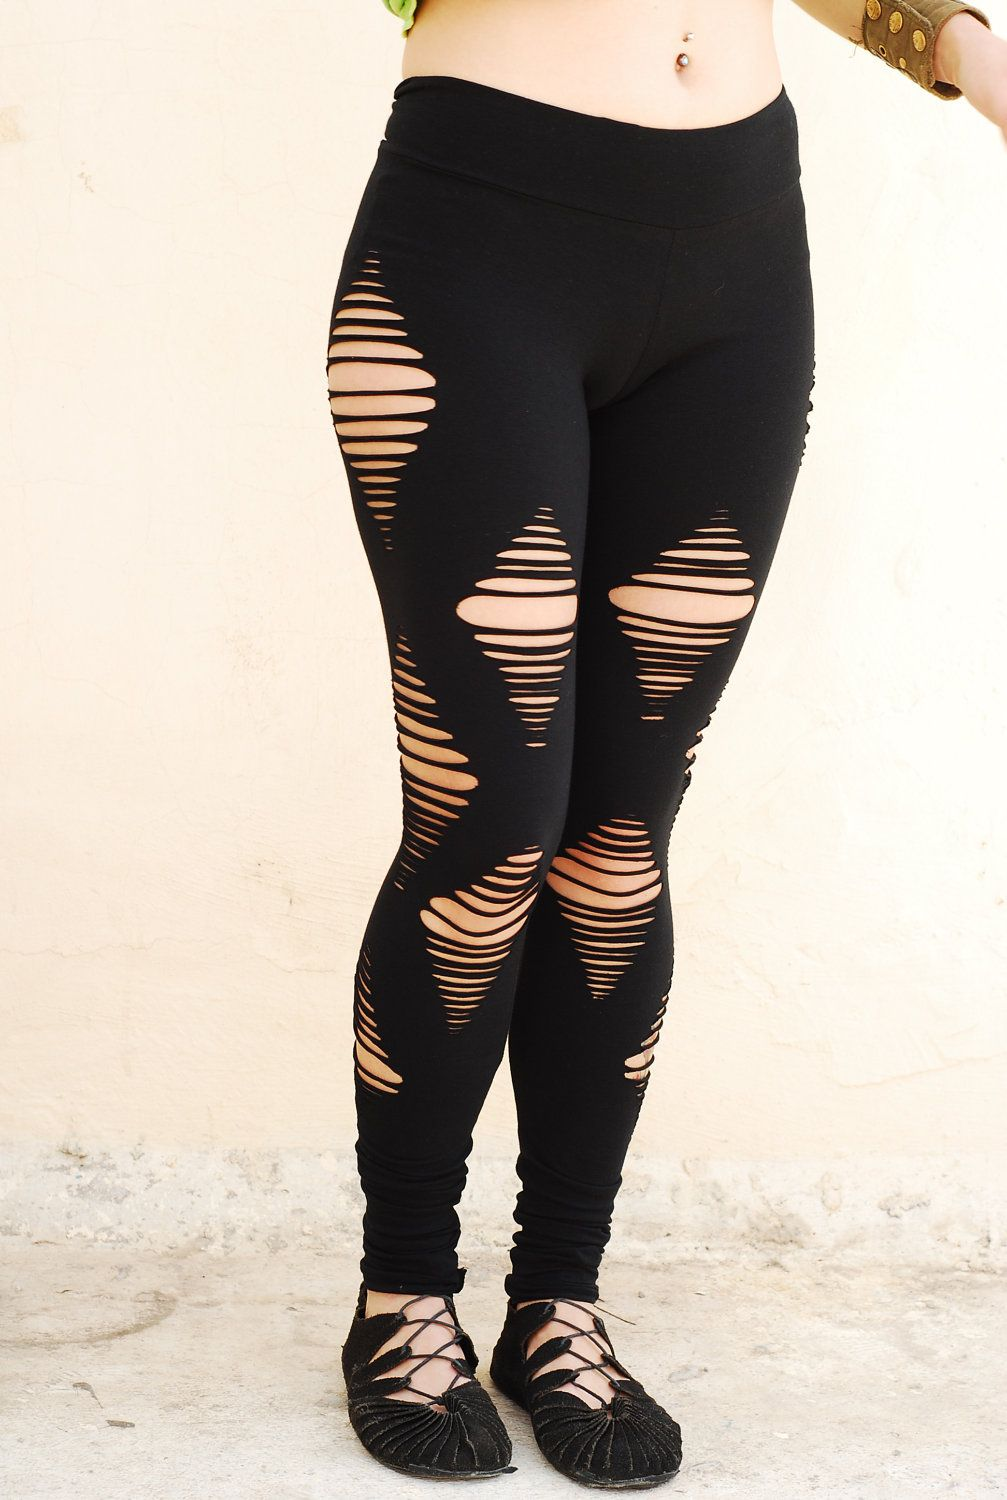 d61b61669b8a33 Cut Out Black Leggings | clothes | Diy ripped jeans, Cut out ...